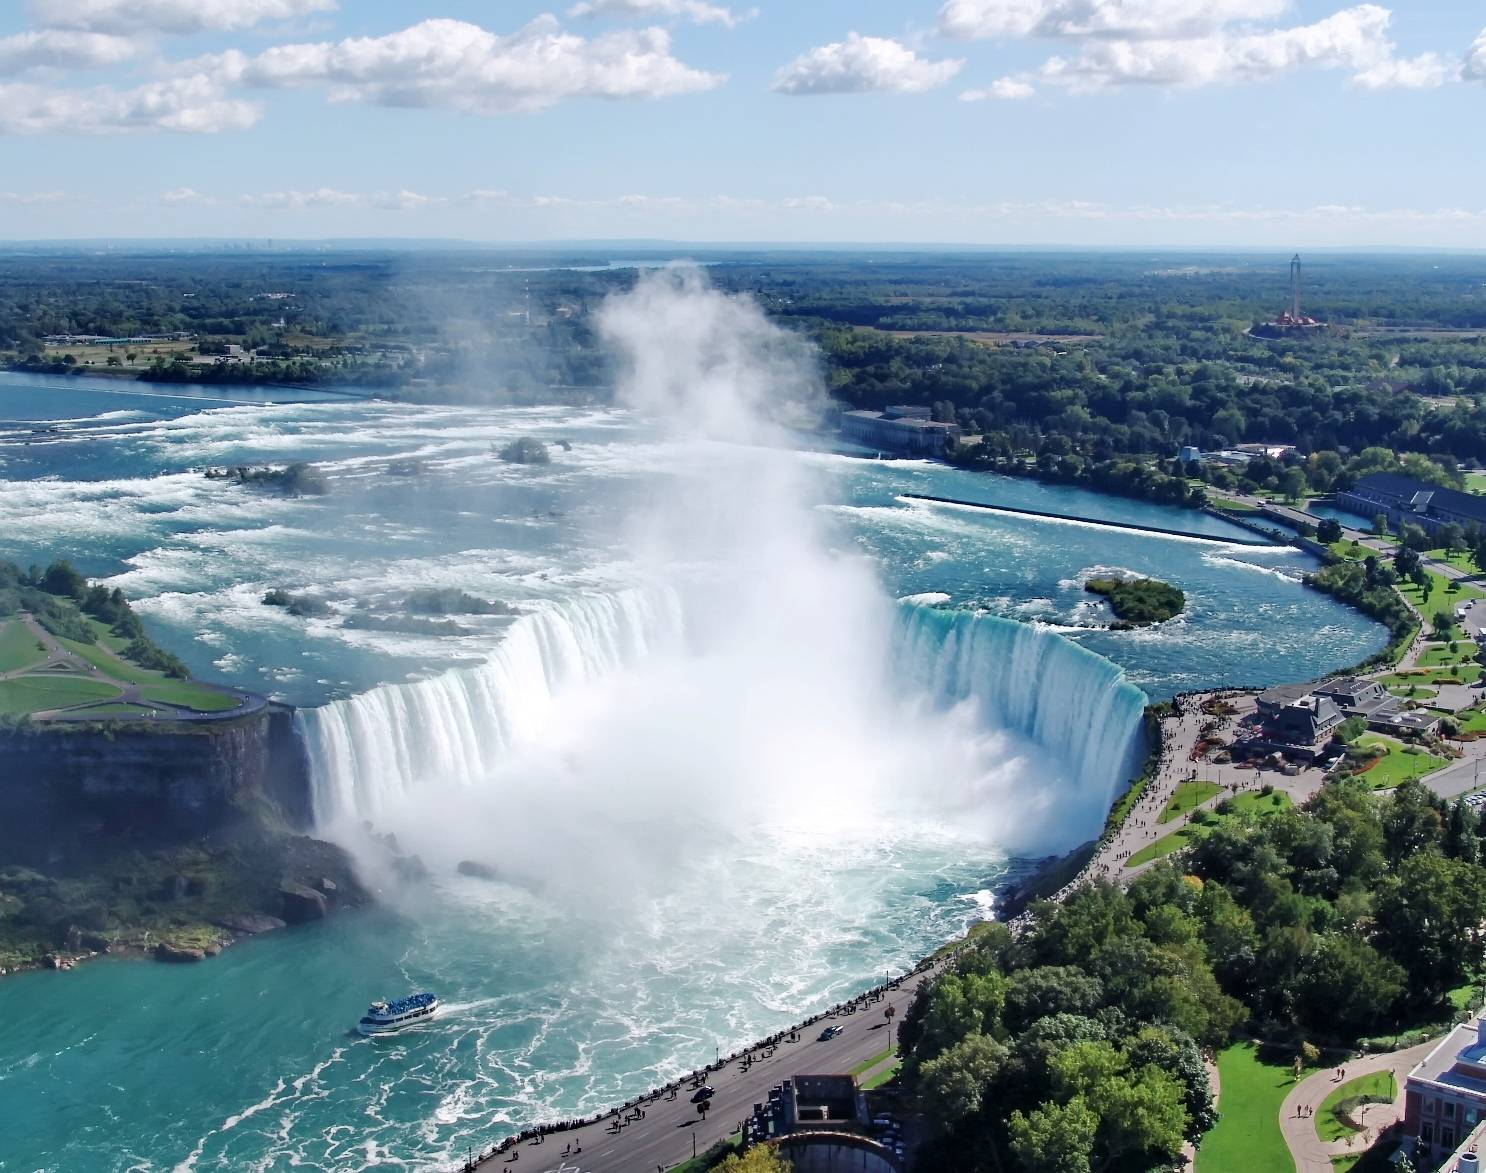 7-Day Canada East In-depth Tour from Toronto: Thousand Islands, Ottawa, Quebec, Niagara Falls, Montreal - Upgraded hotel in Quebec